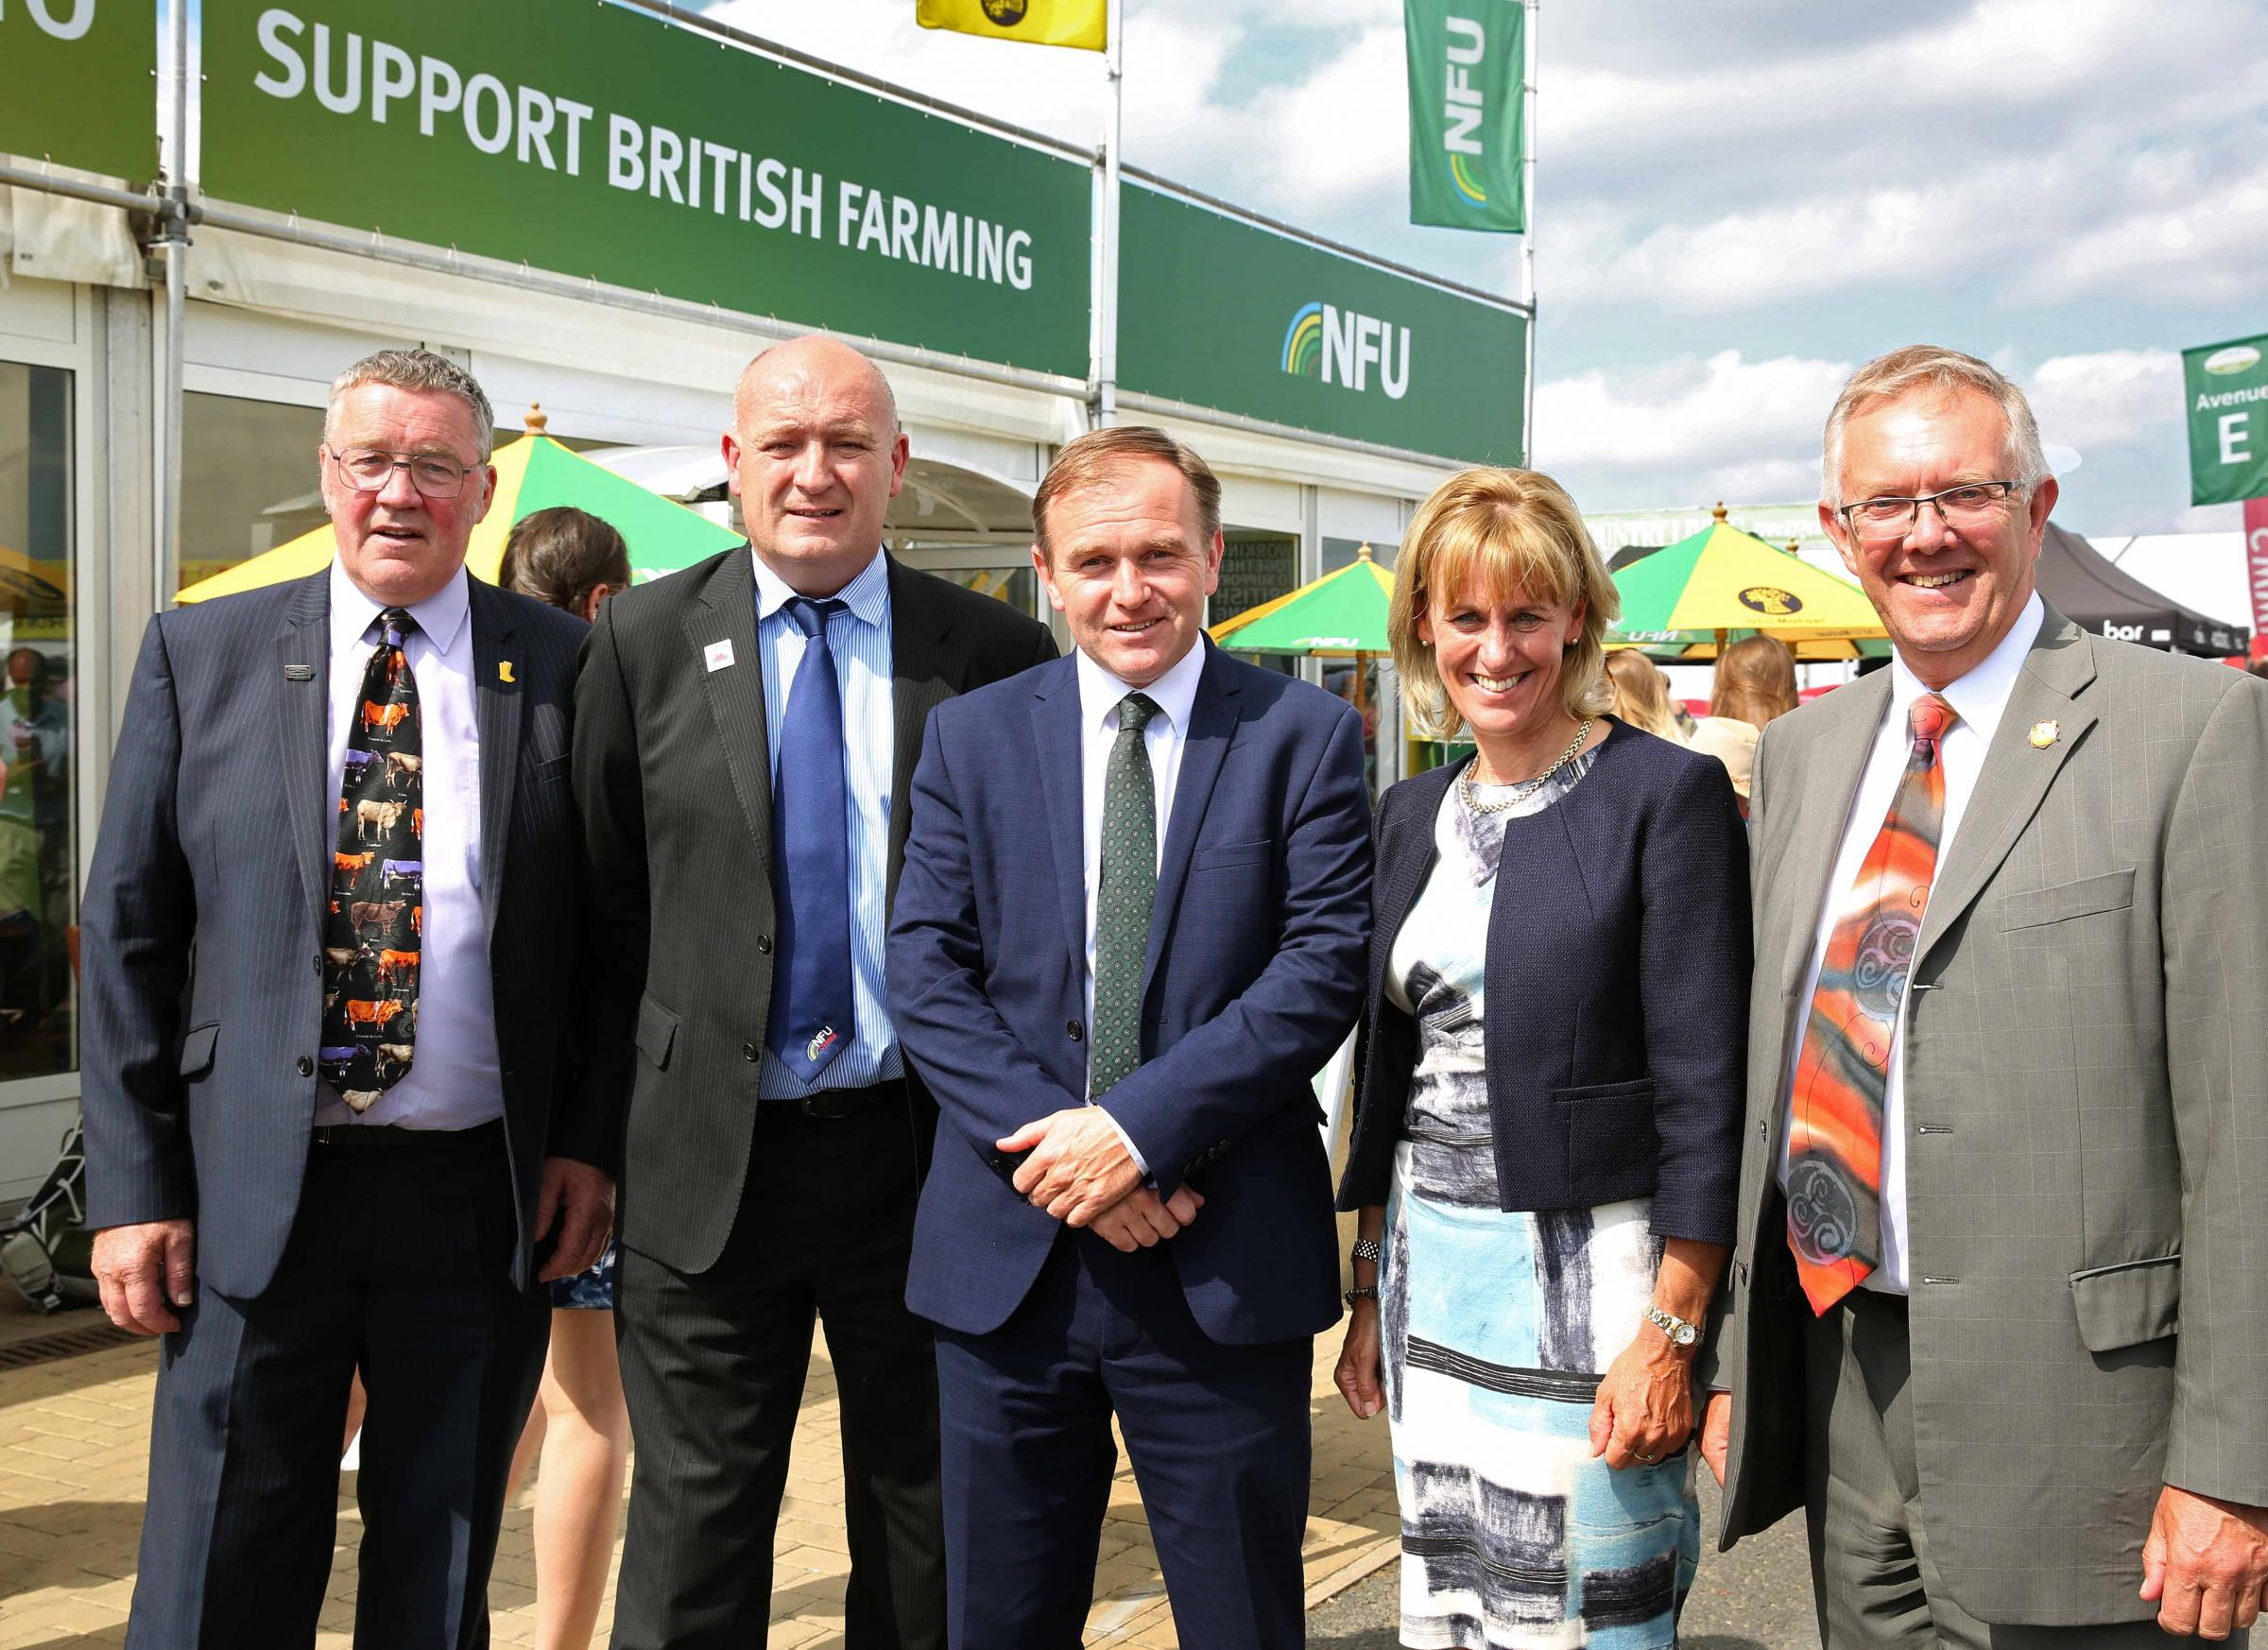 FARM-ING: Farming minister George Eustice with NFU presid-ents. Picture: Richard Doughty